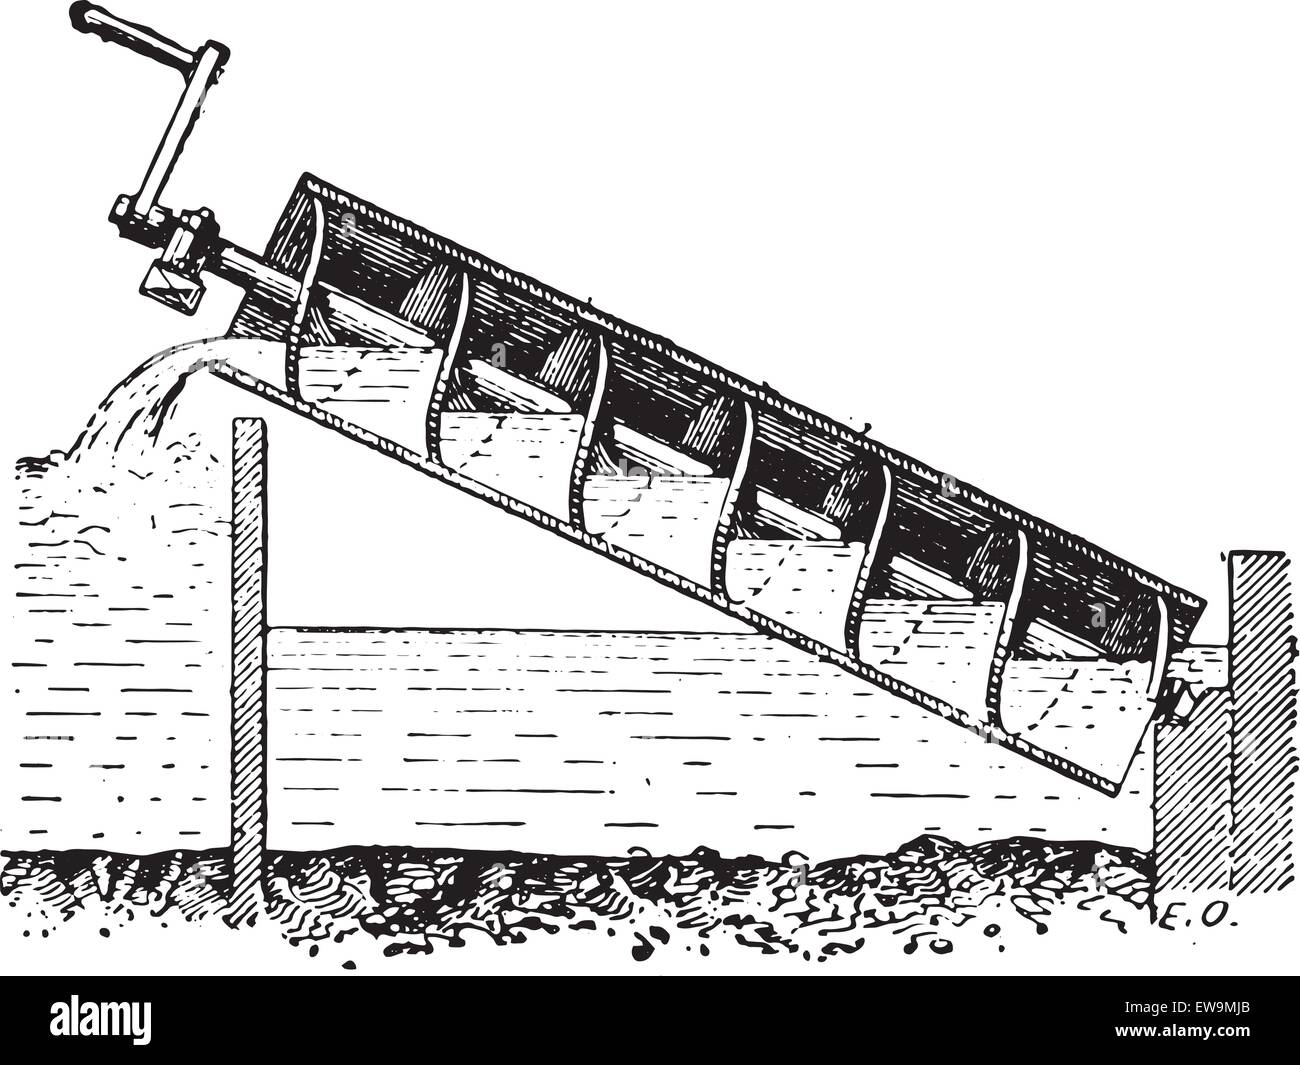 Archimedes Screw Stock Photos & Archimedes Screw Stock Images - Alamy